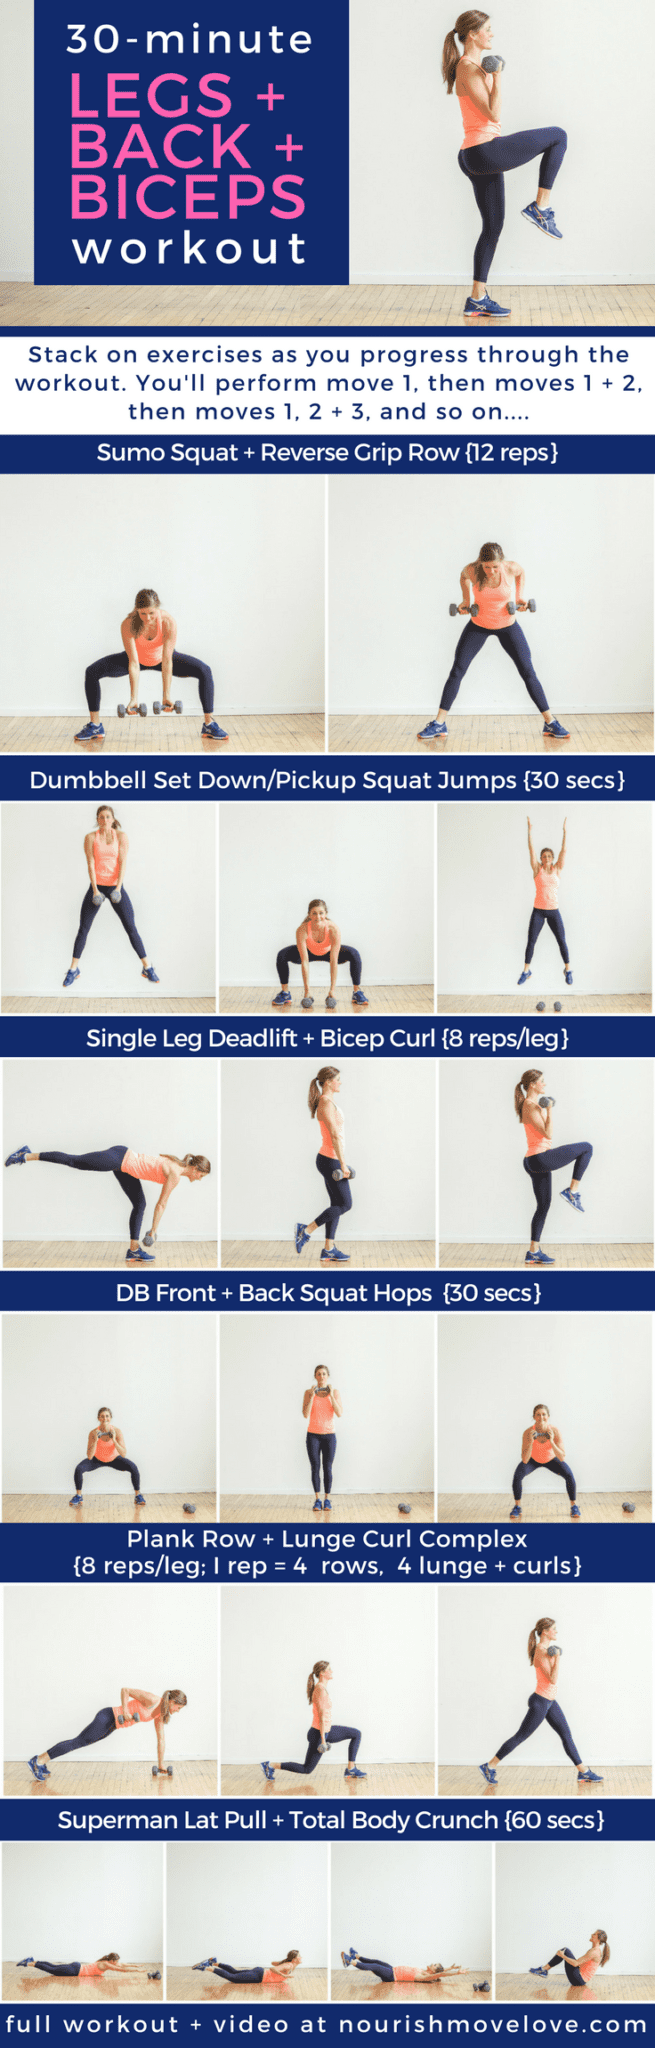 30-Minute Legs + Back + Biceps Workout